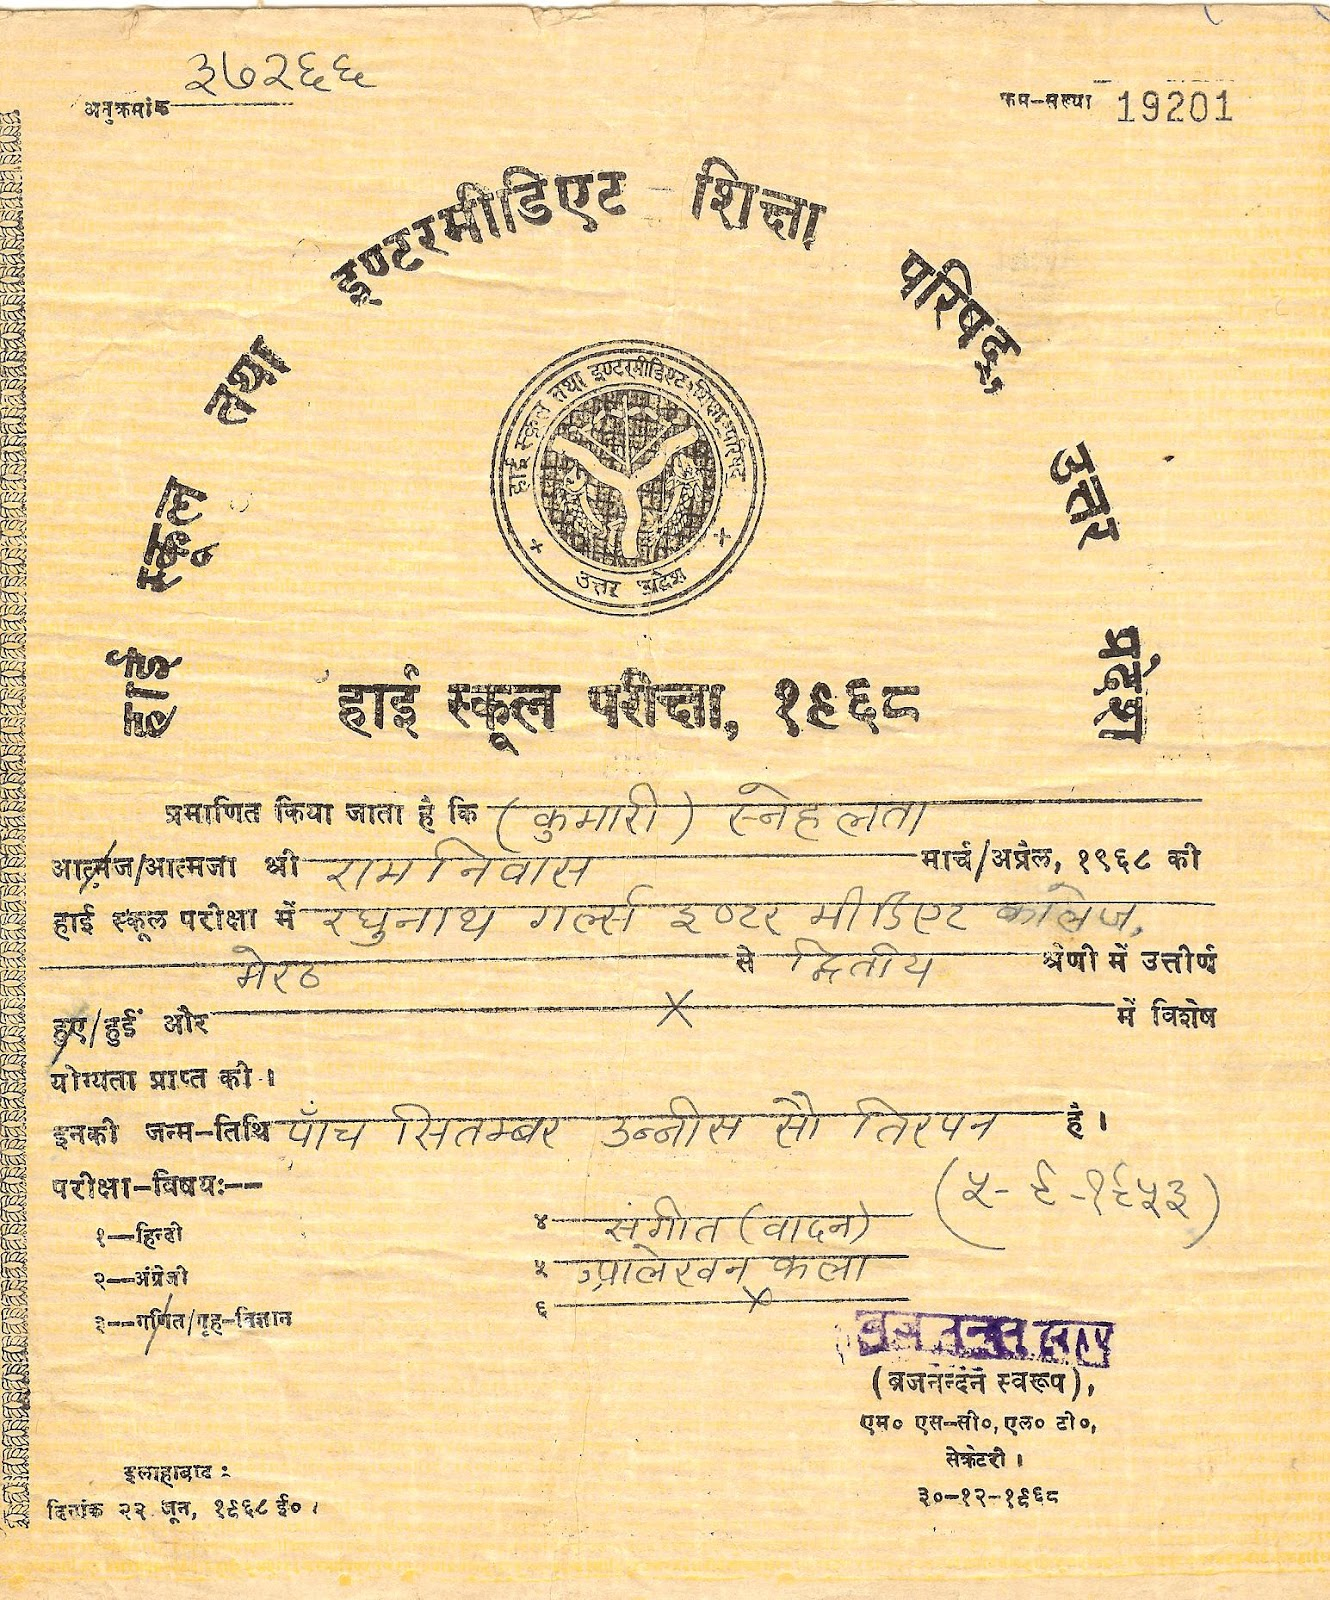 Birth certificate sample uttar pradesh images certificate design education certificates sneh mohan education certificates my high school certificate yadclub images aiddatafo Gallery